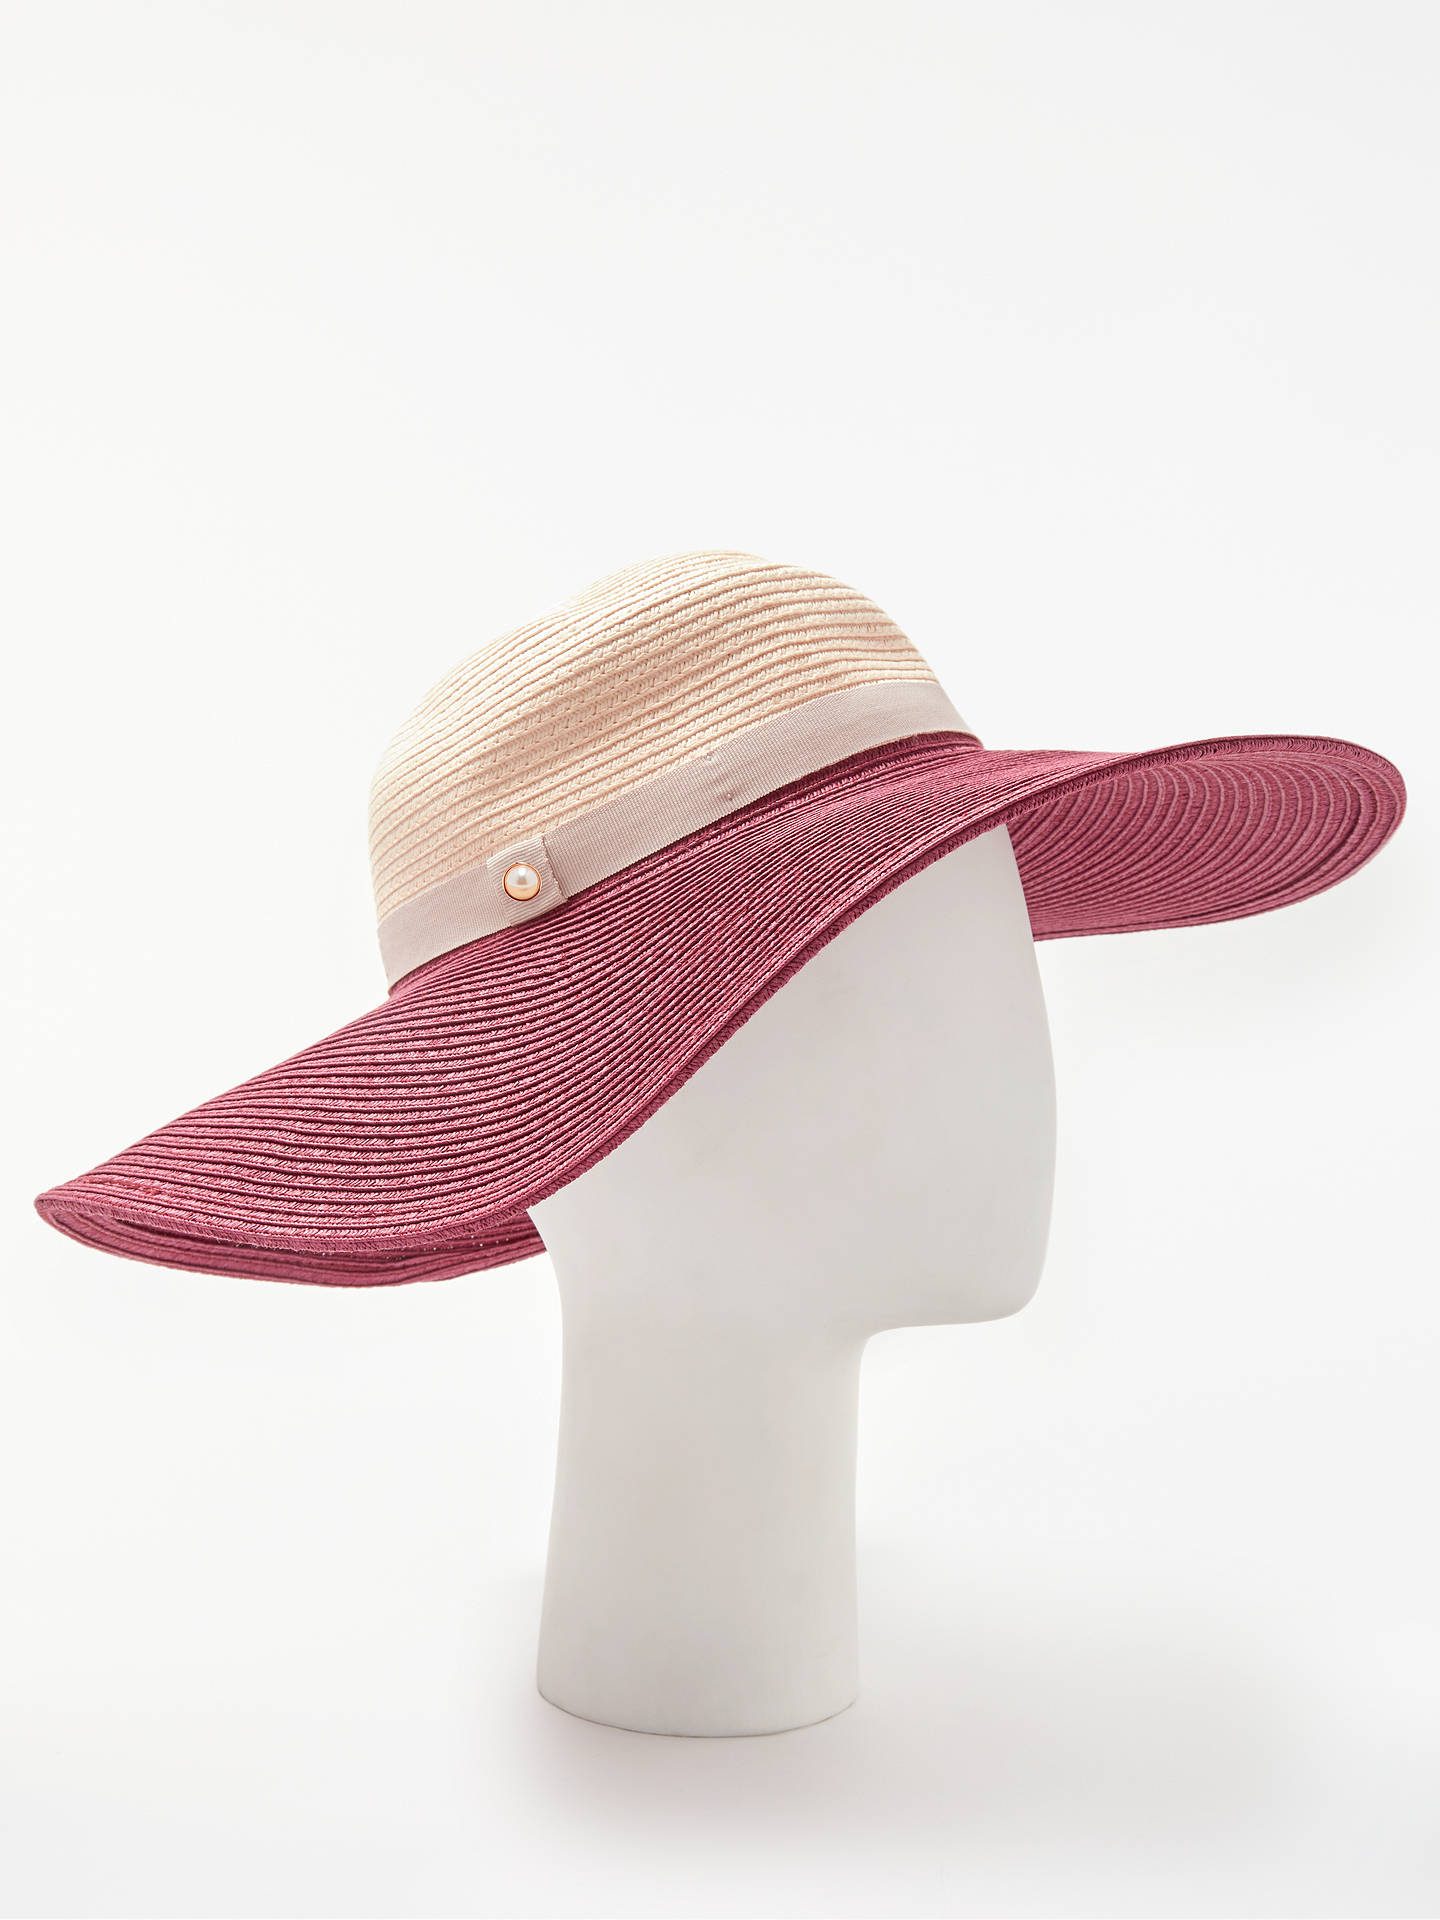 BuyTed Baker Alisae Colourblock Floppy Hat 1042fdc7d02